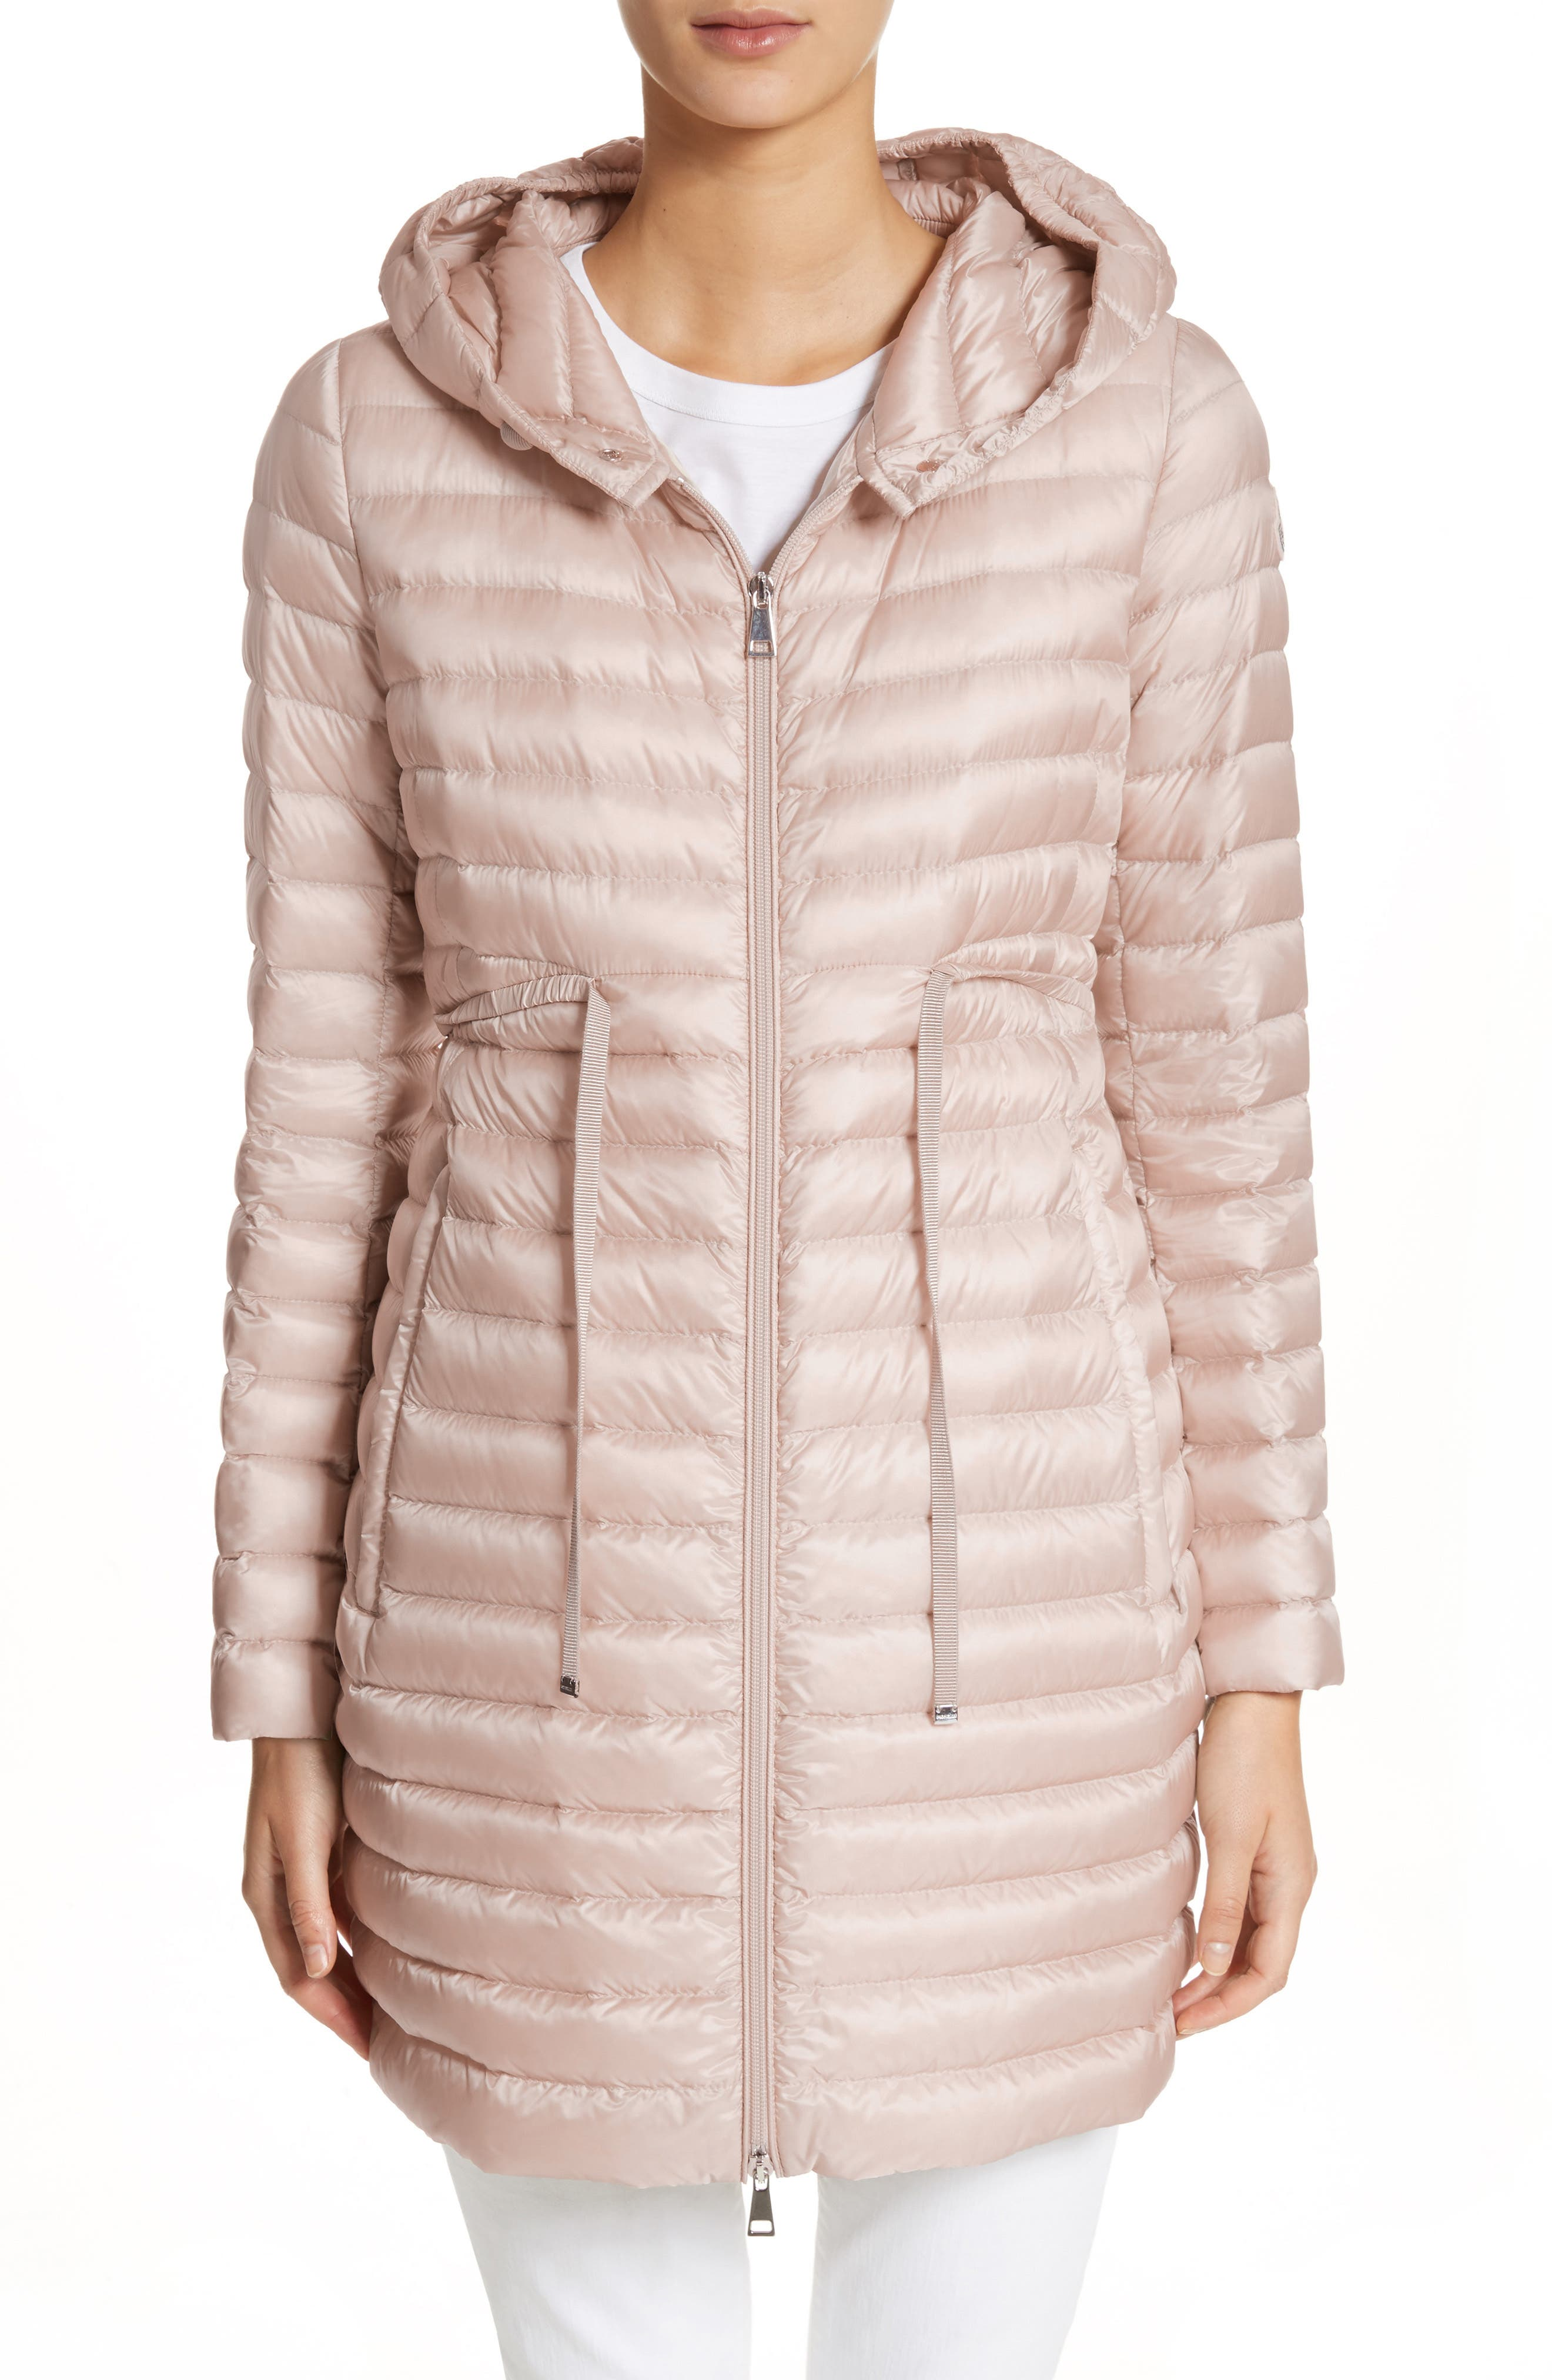 Barbel Water Resistant Long Hooded Down Jacket,                             Main thumbnail 1, color,                             Blush